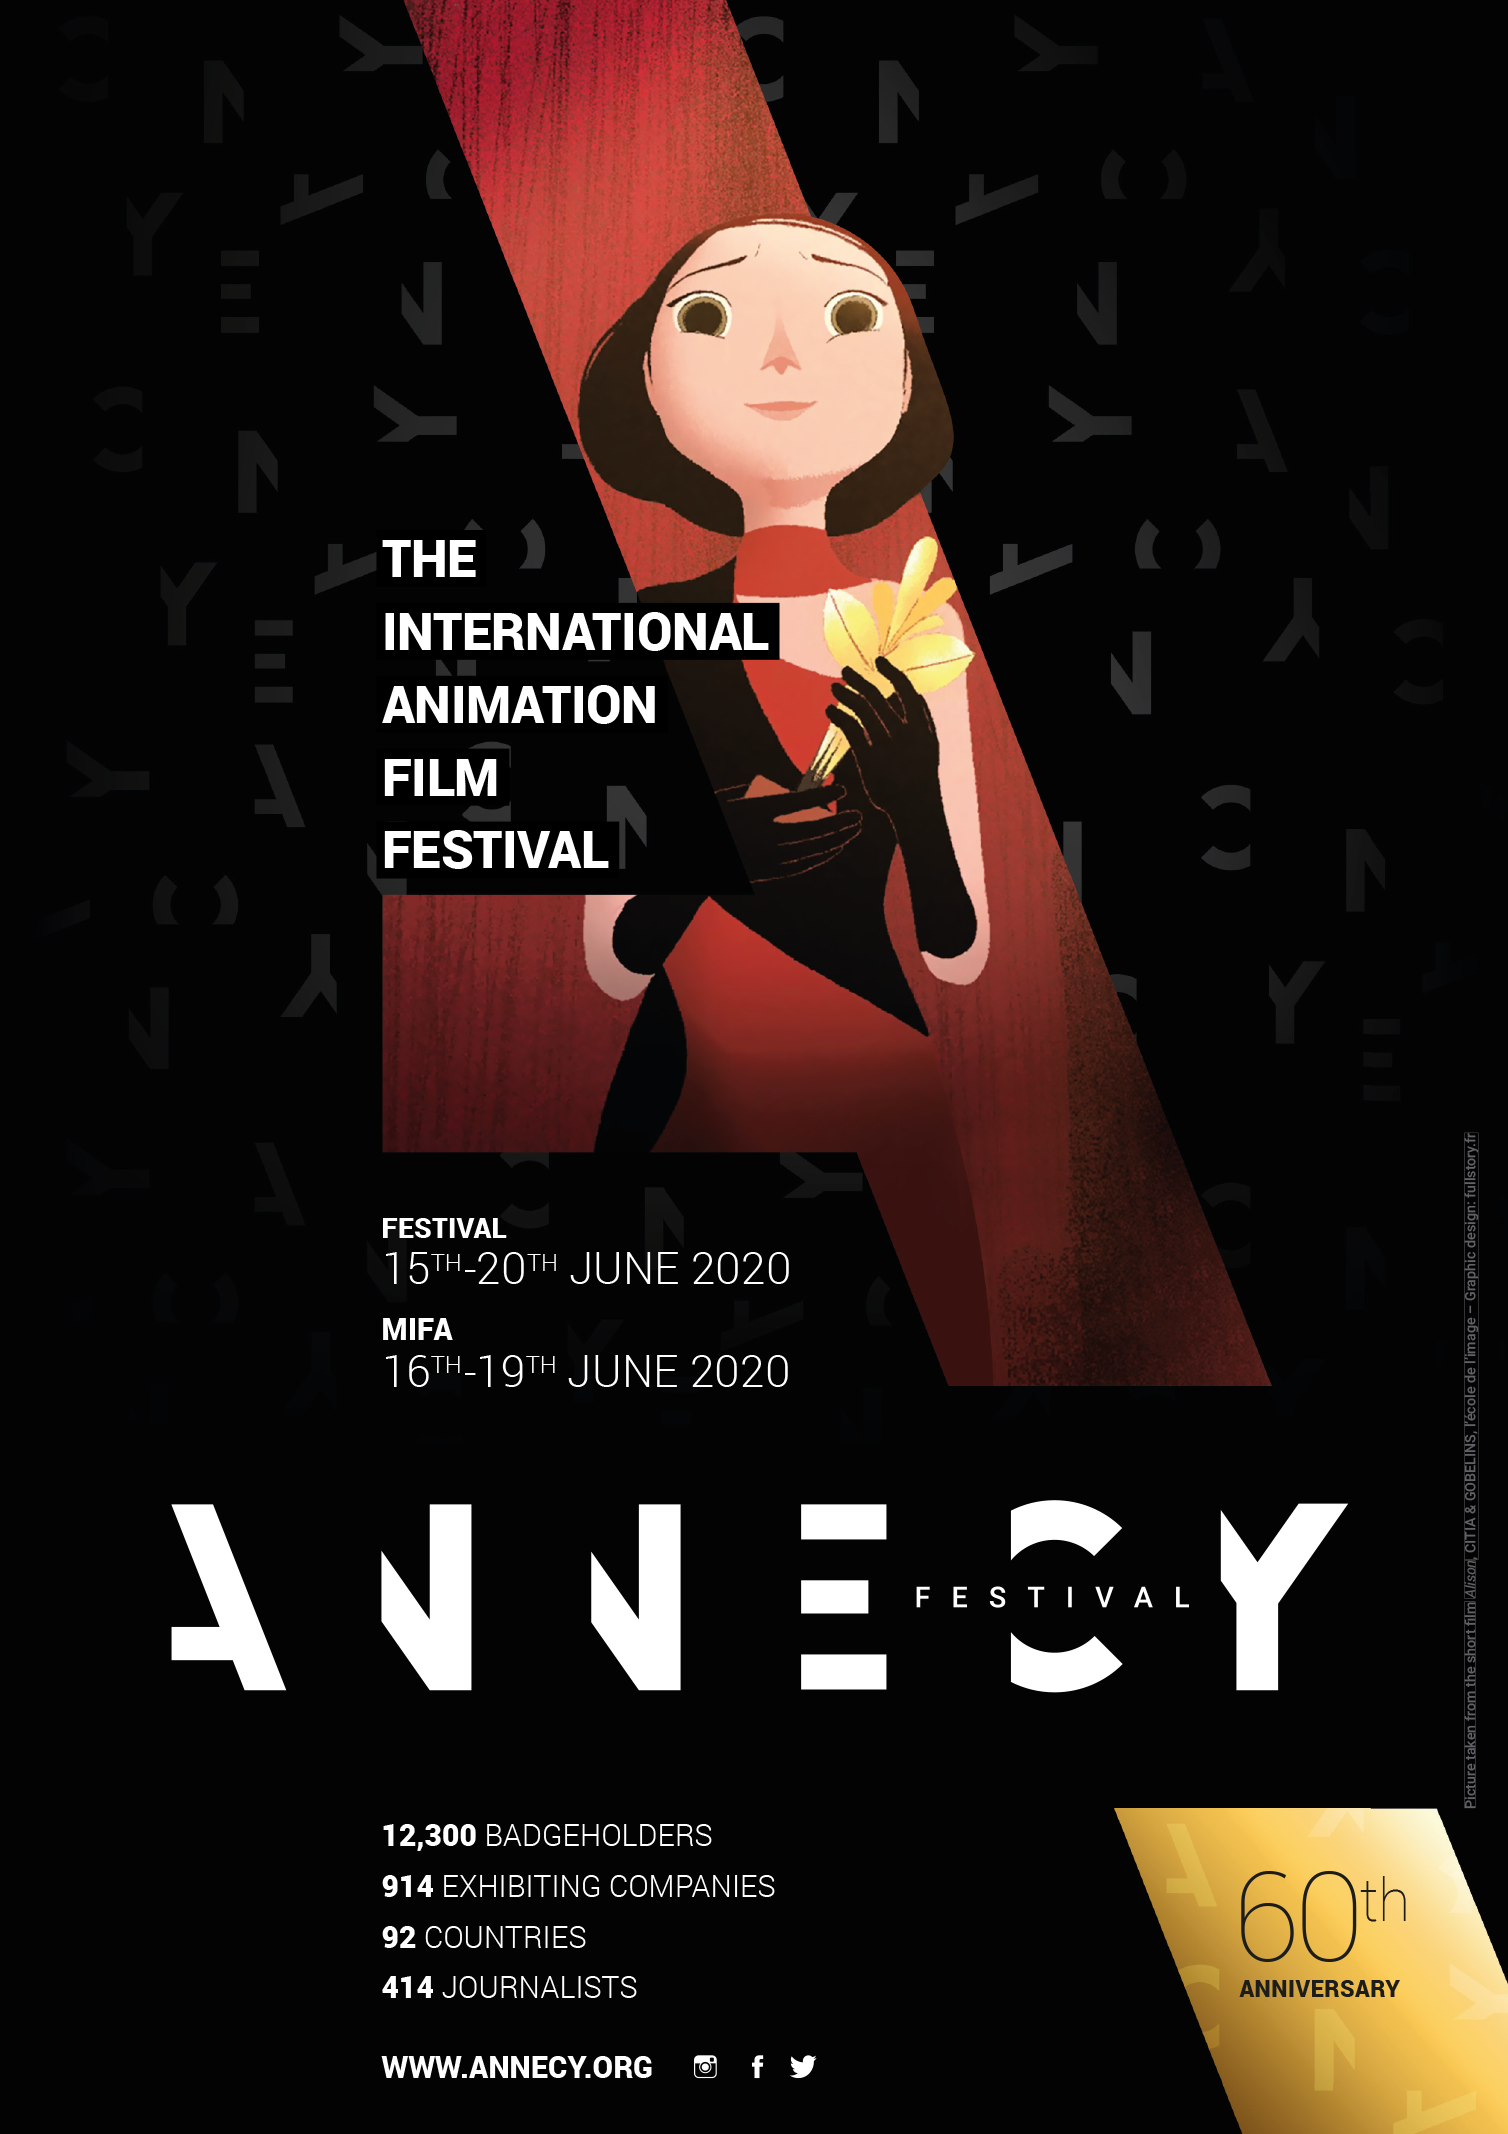 ANNECY - PRESS CONFERENCE @ DISCOP JOHANNESBURG